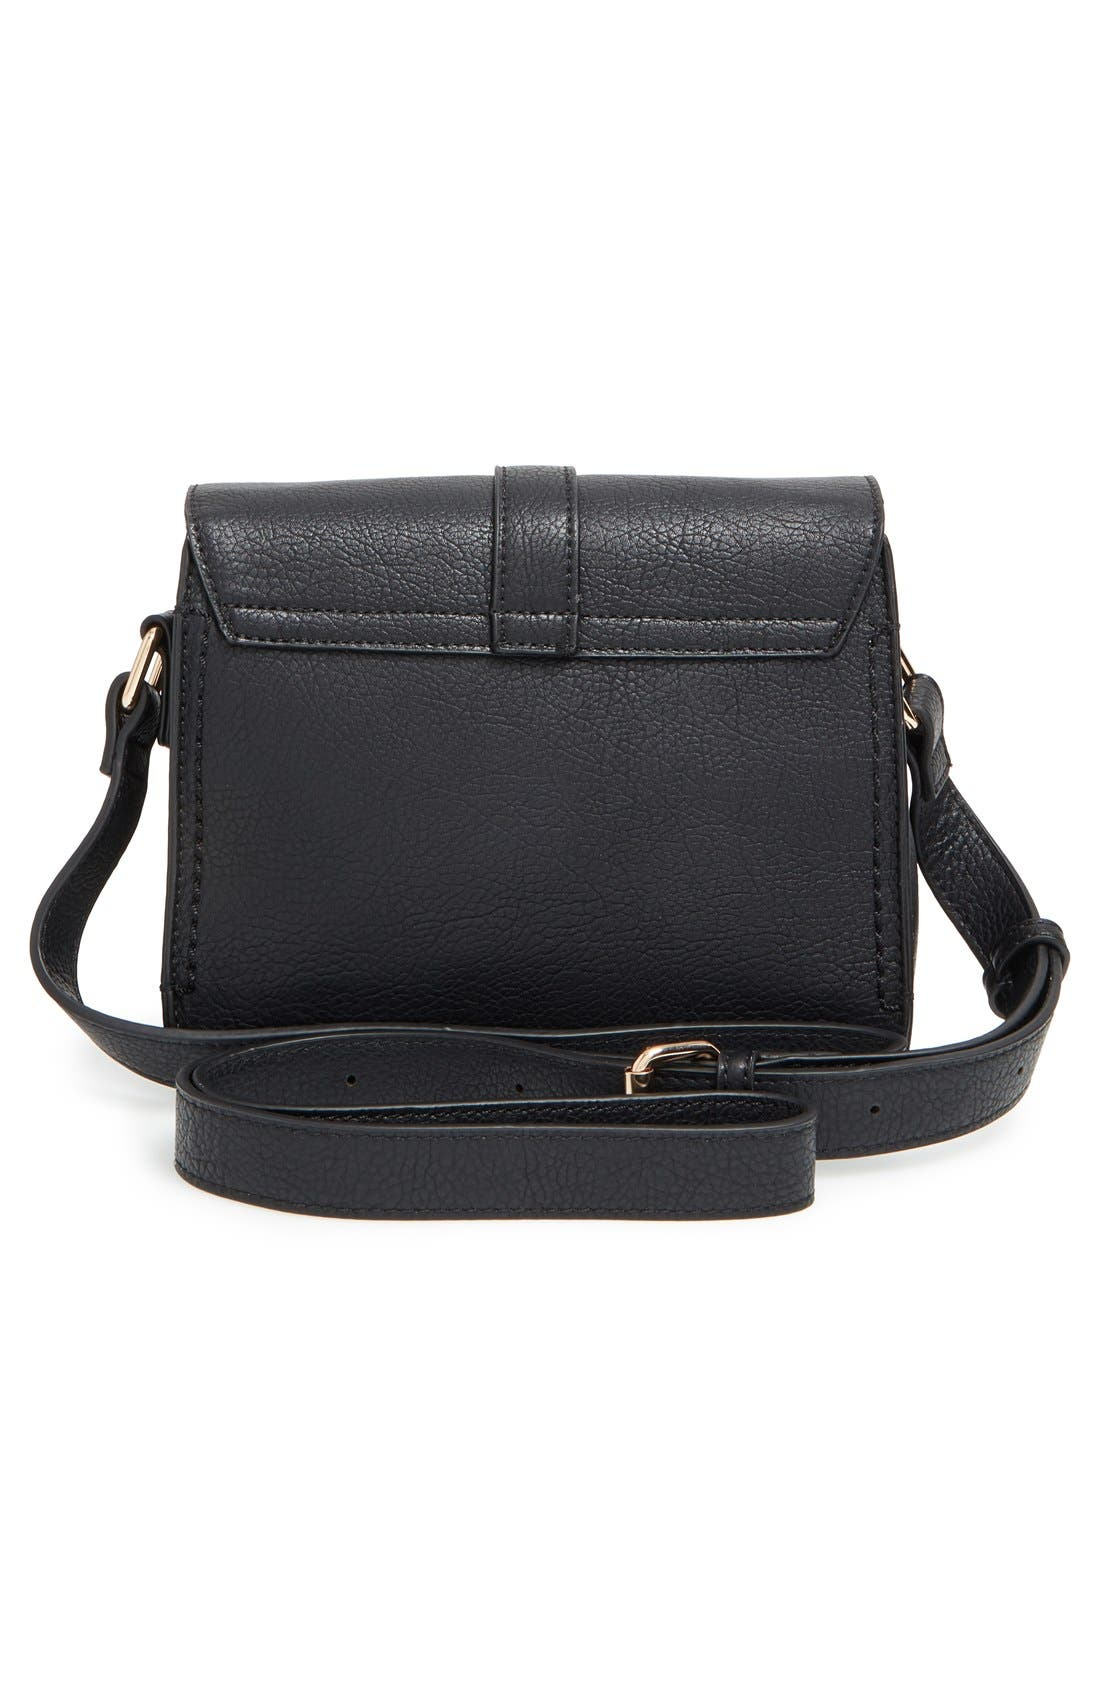 Alternate Image 3  - Sole Society 'Saylah' Structured Faux Leather Crossbody Bag